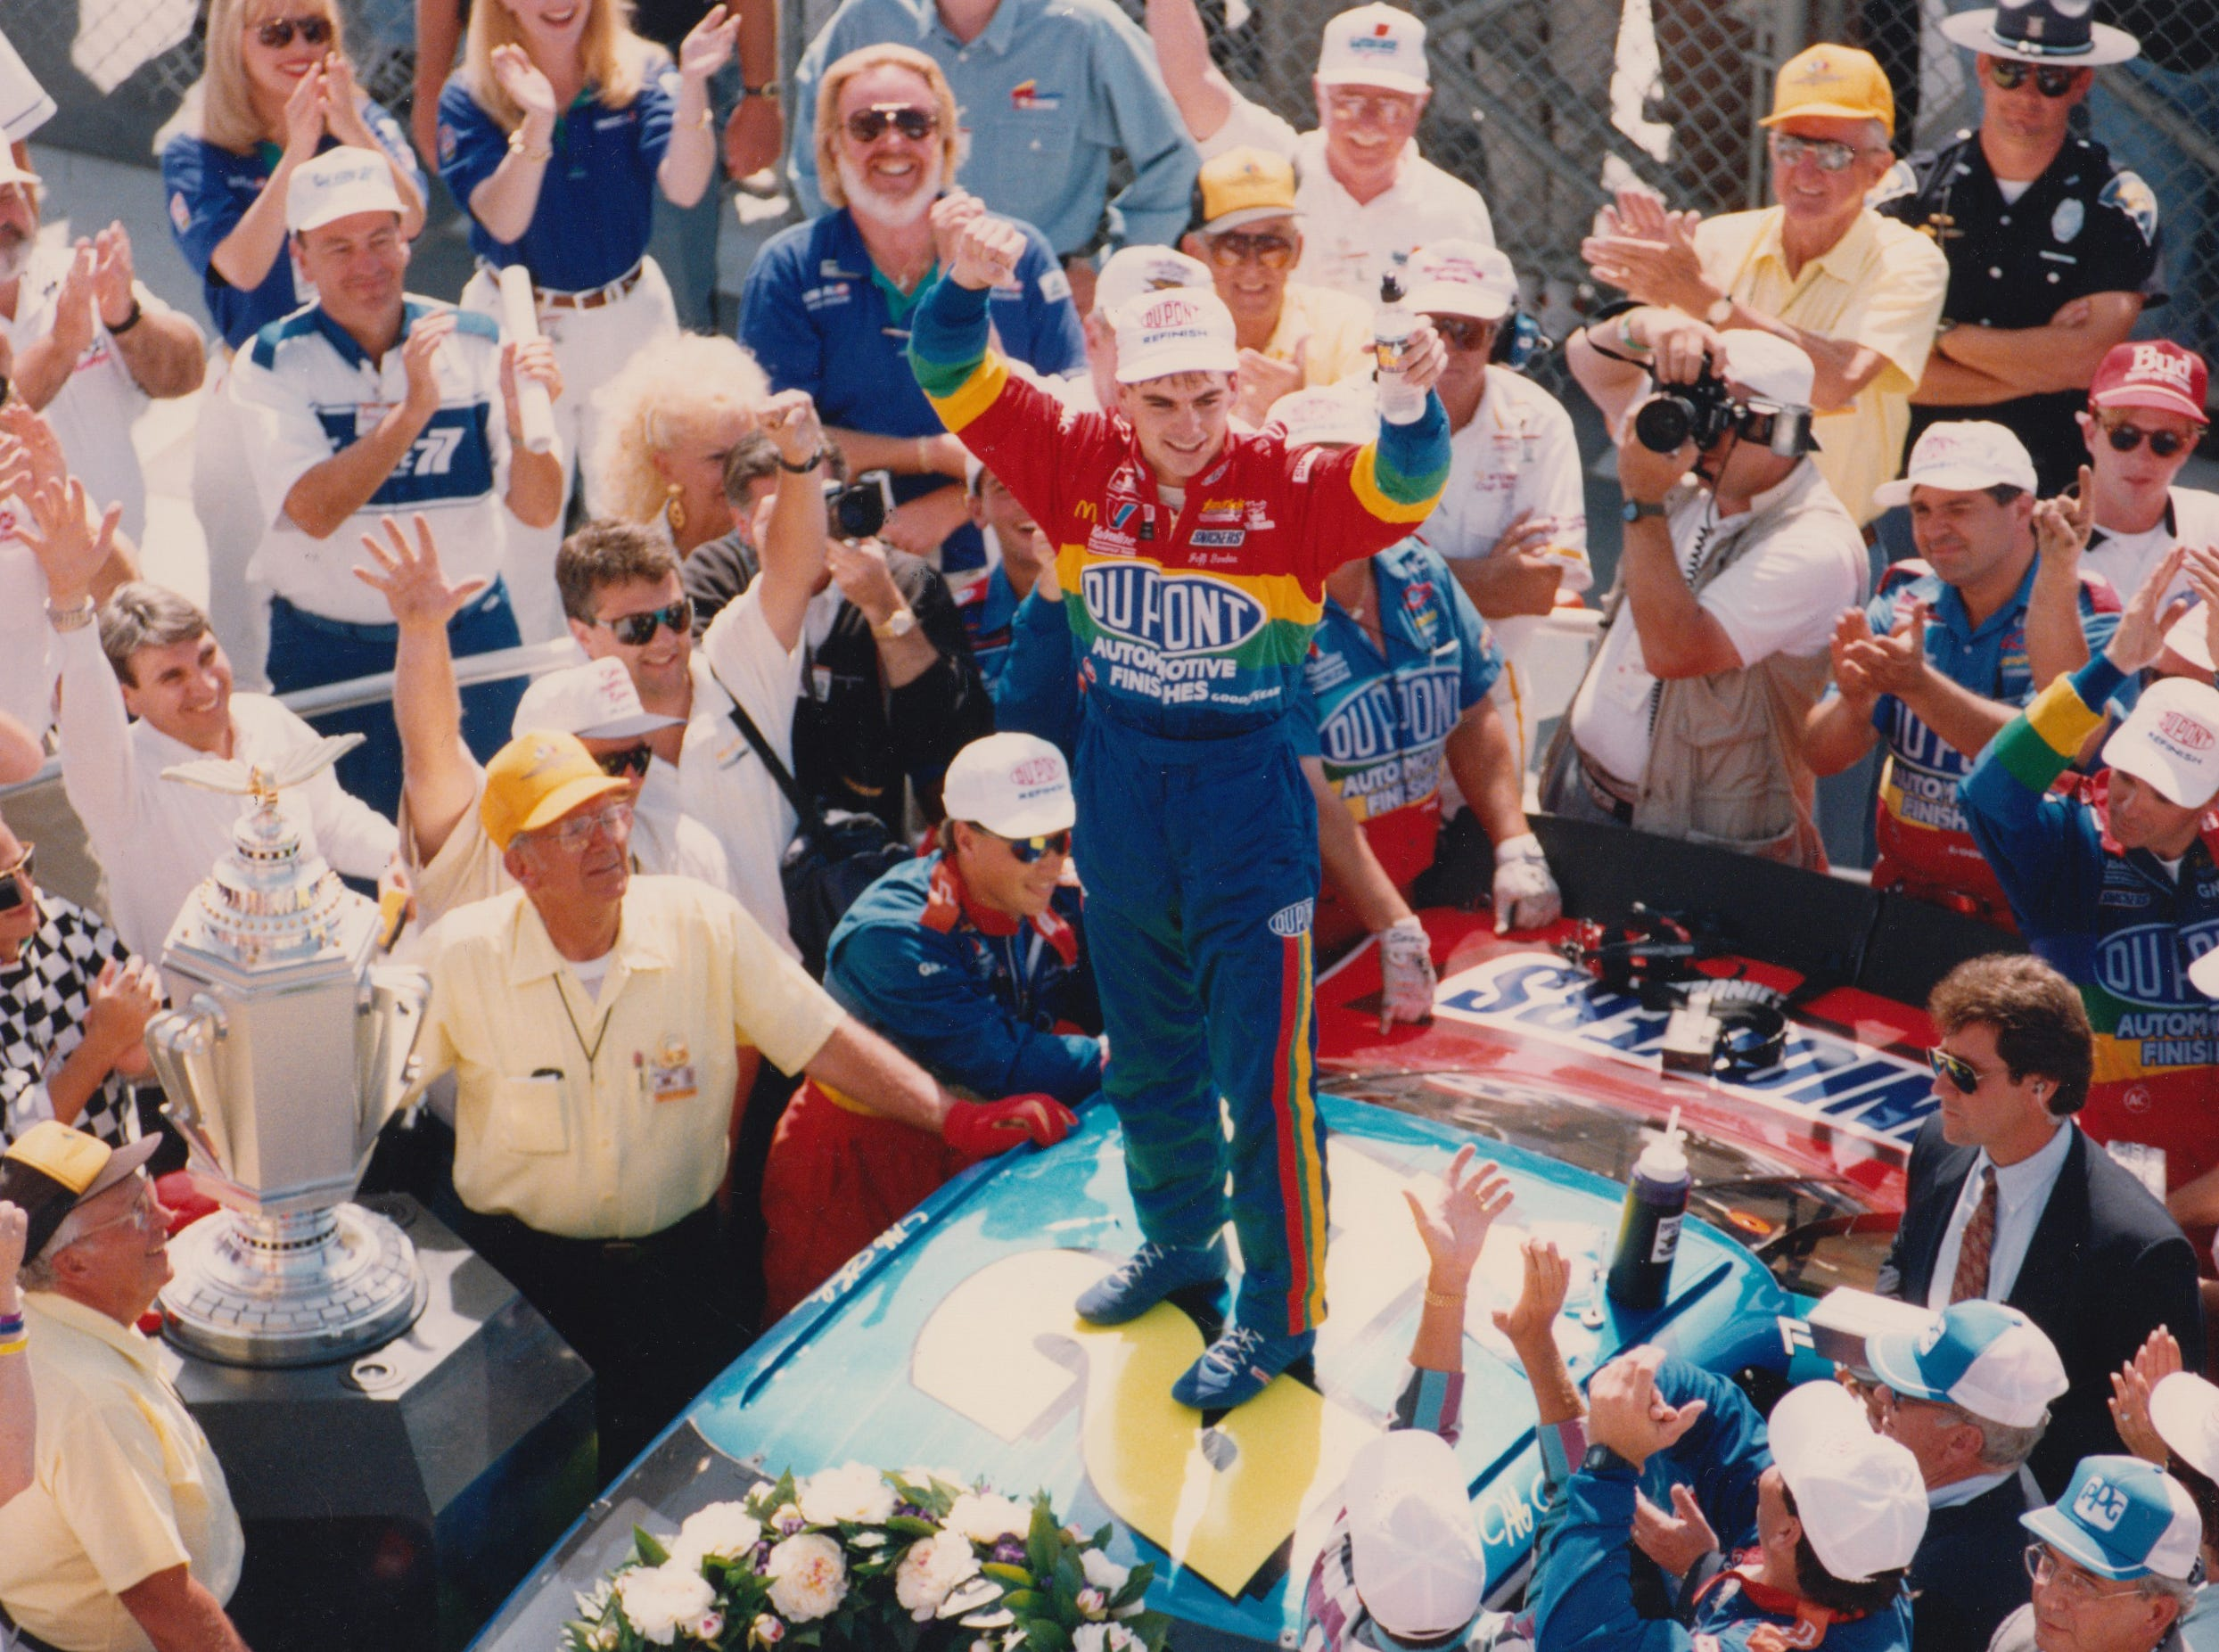 Jeff Gordon celebrates on top of his car after winning the inaugural Brickyard 400 in 1994.